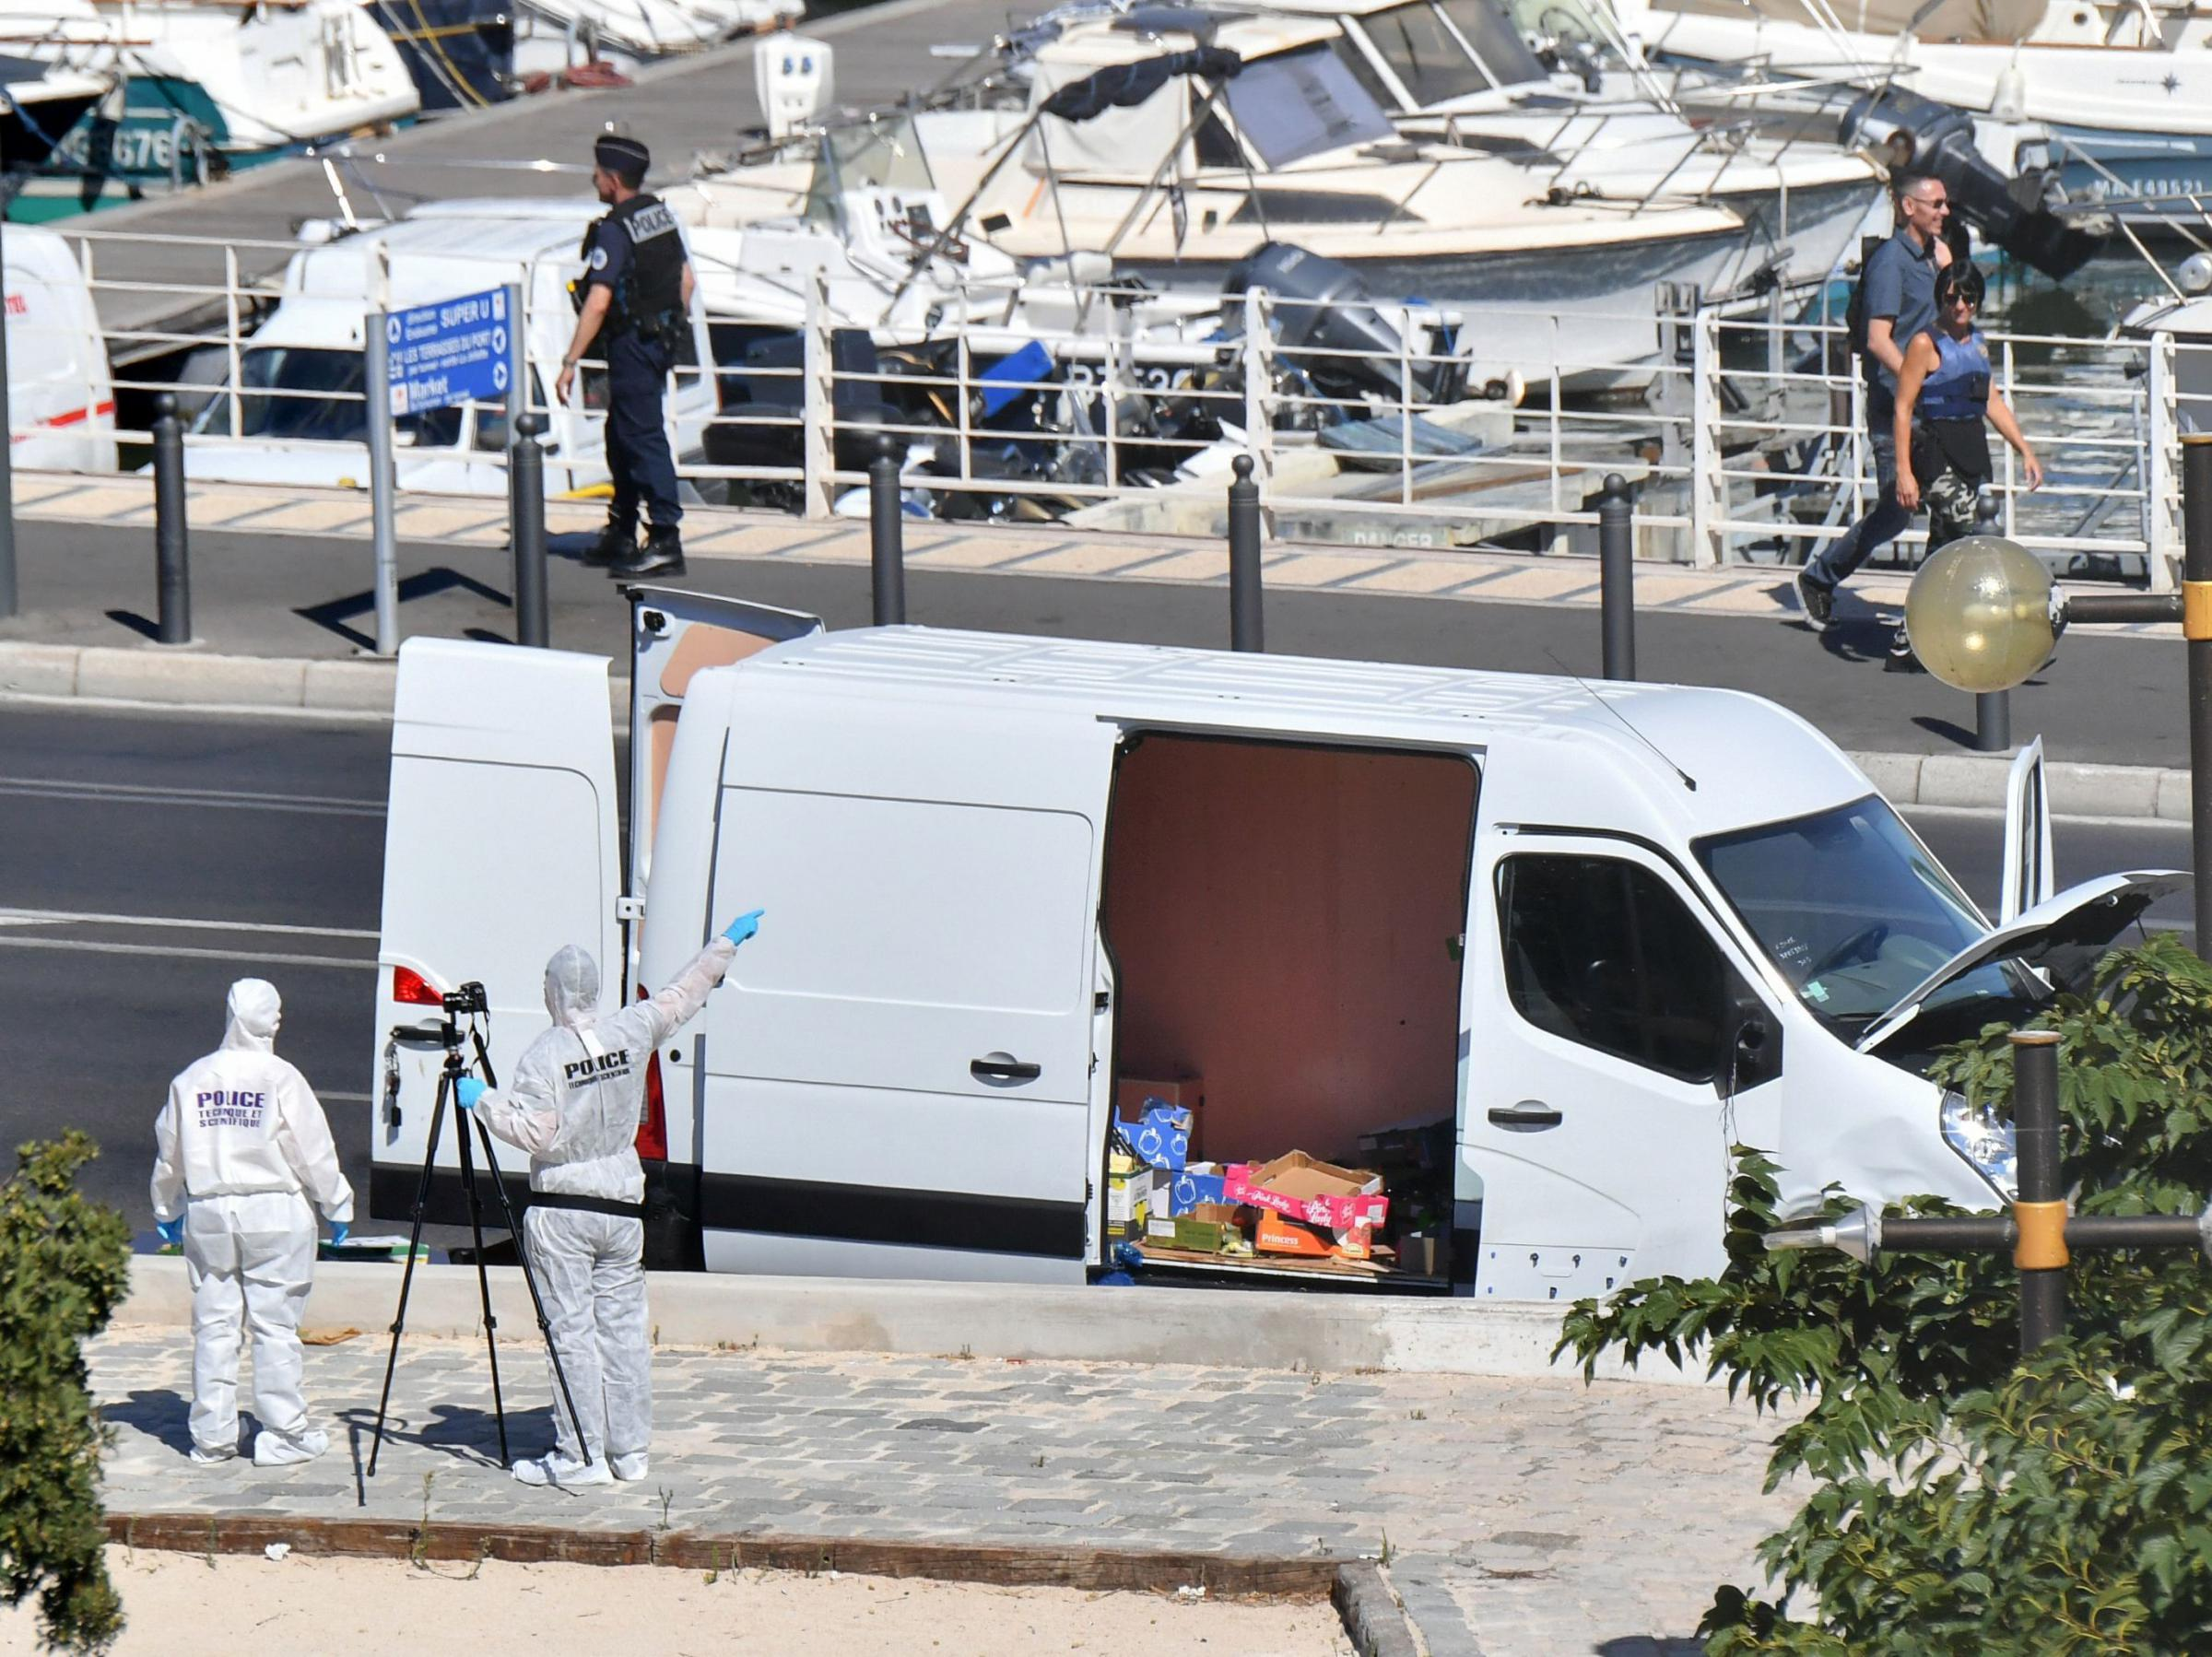 One killed in Marseille after vehicle crashes into bus shelters: Police source